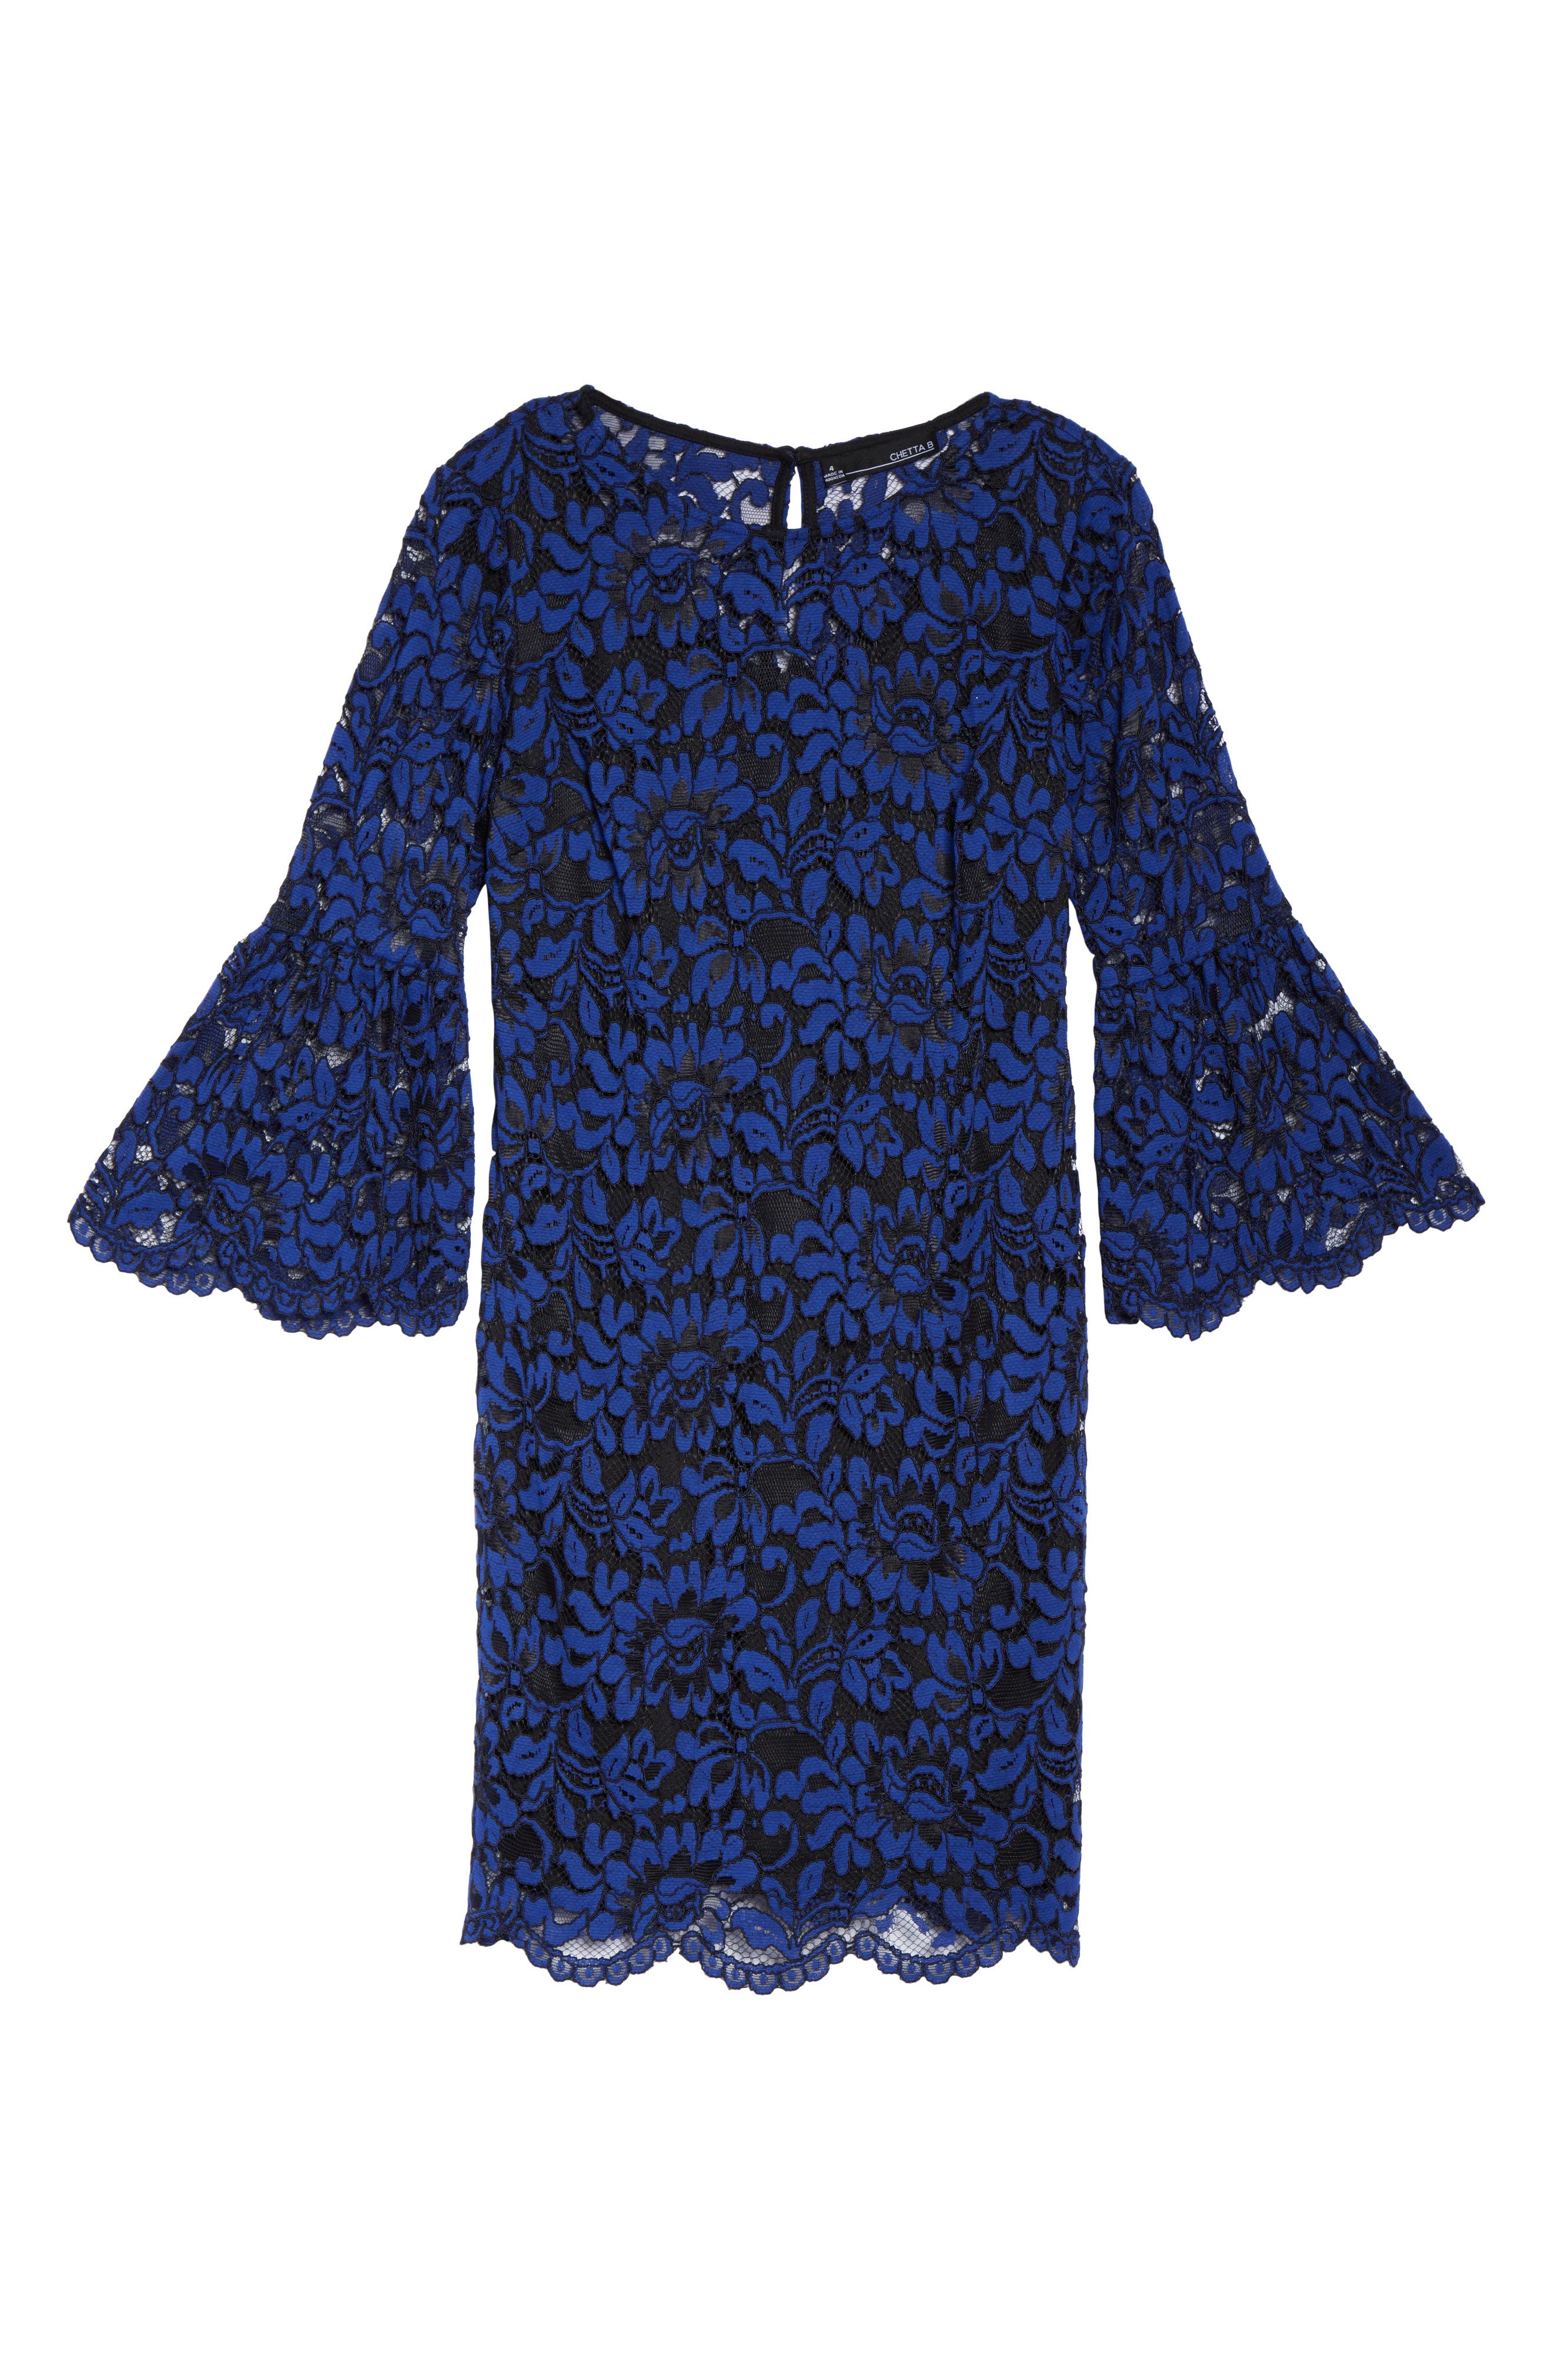 Bell Sleeve Lace Dress,                             Alternate thumbnail 6, color,                             492